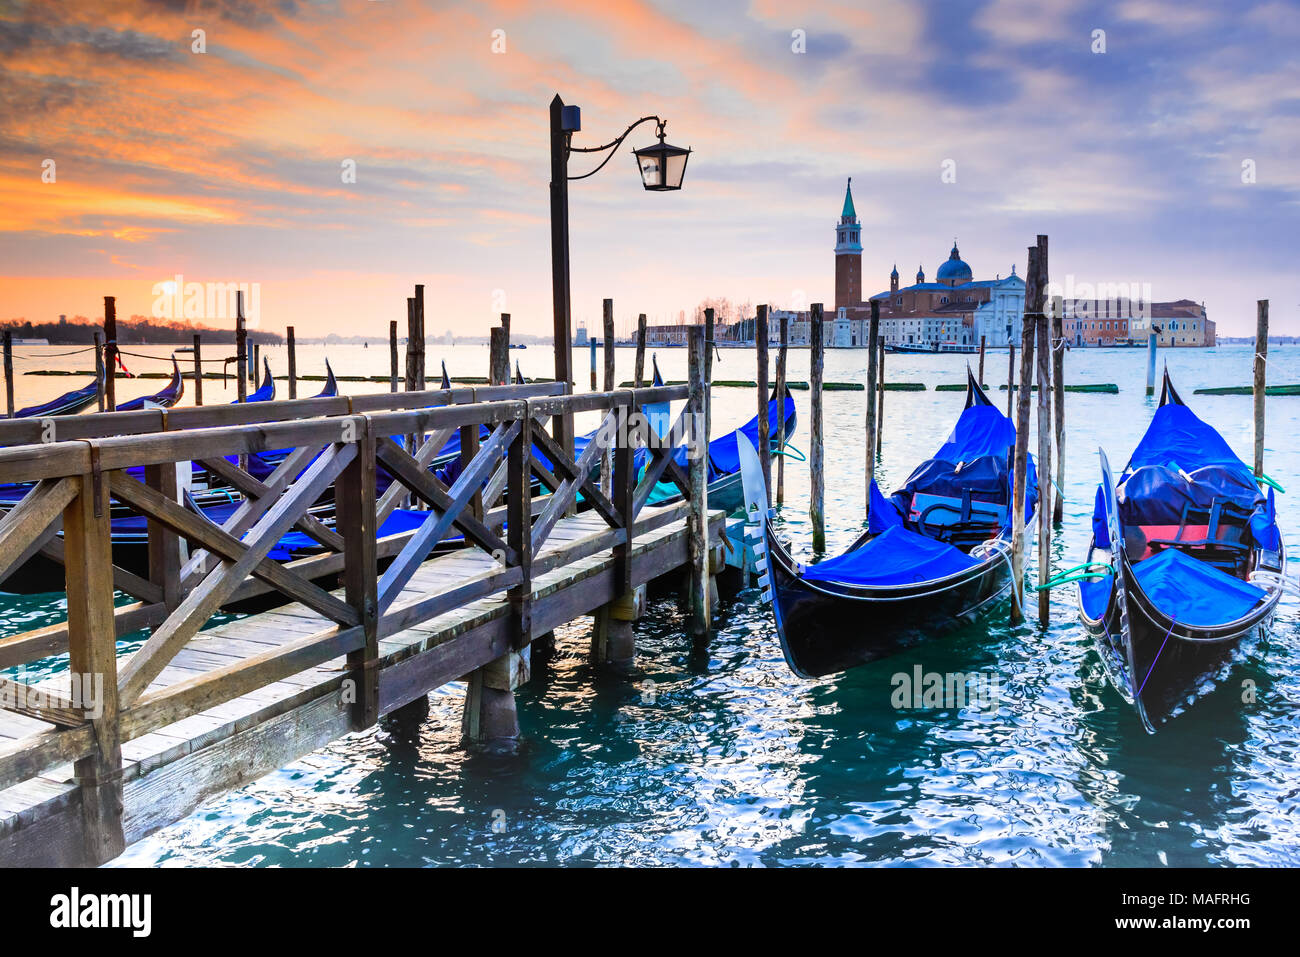 Venice, Italy. Sunrise with Gondolas on Grand Canal, Piazza San Marco, Adriatic Sea. Stock Photo